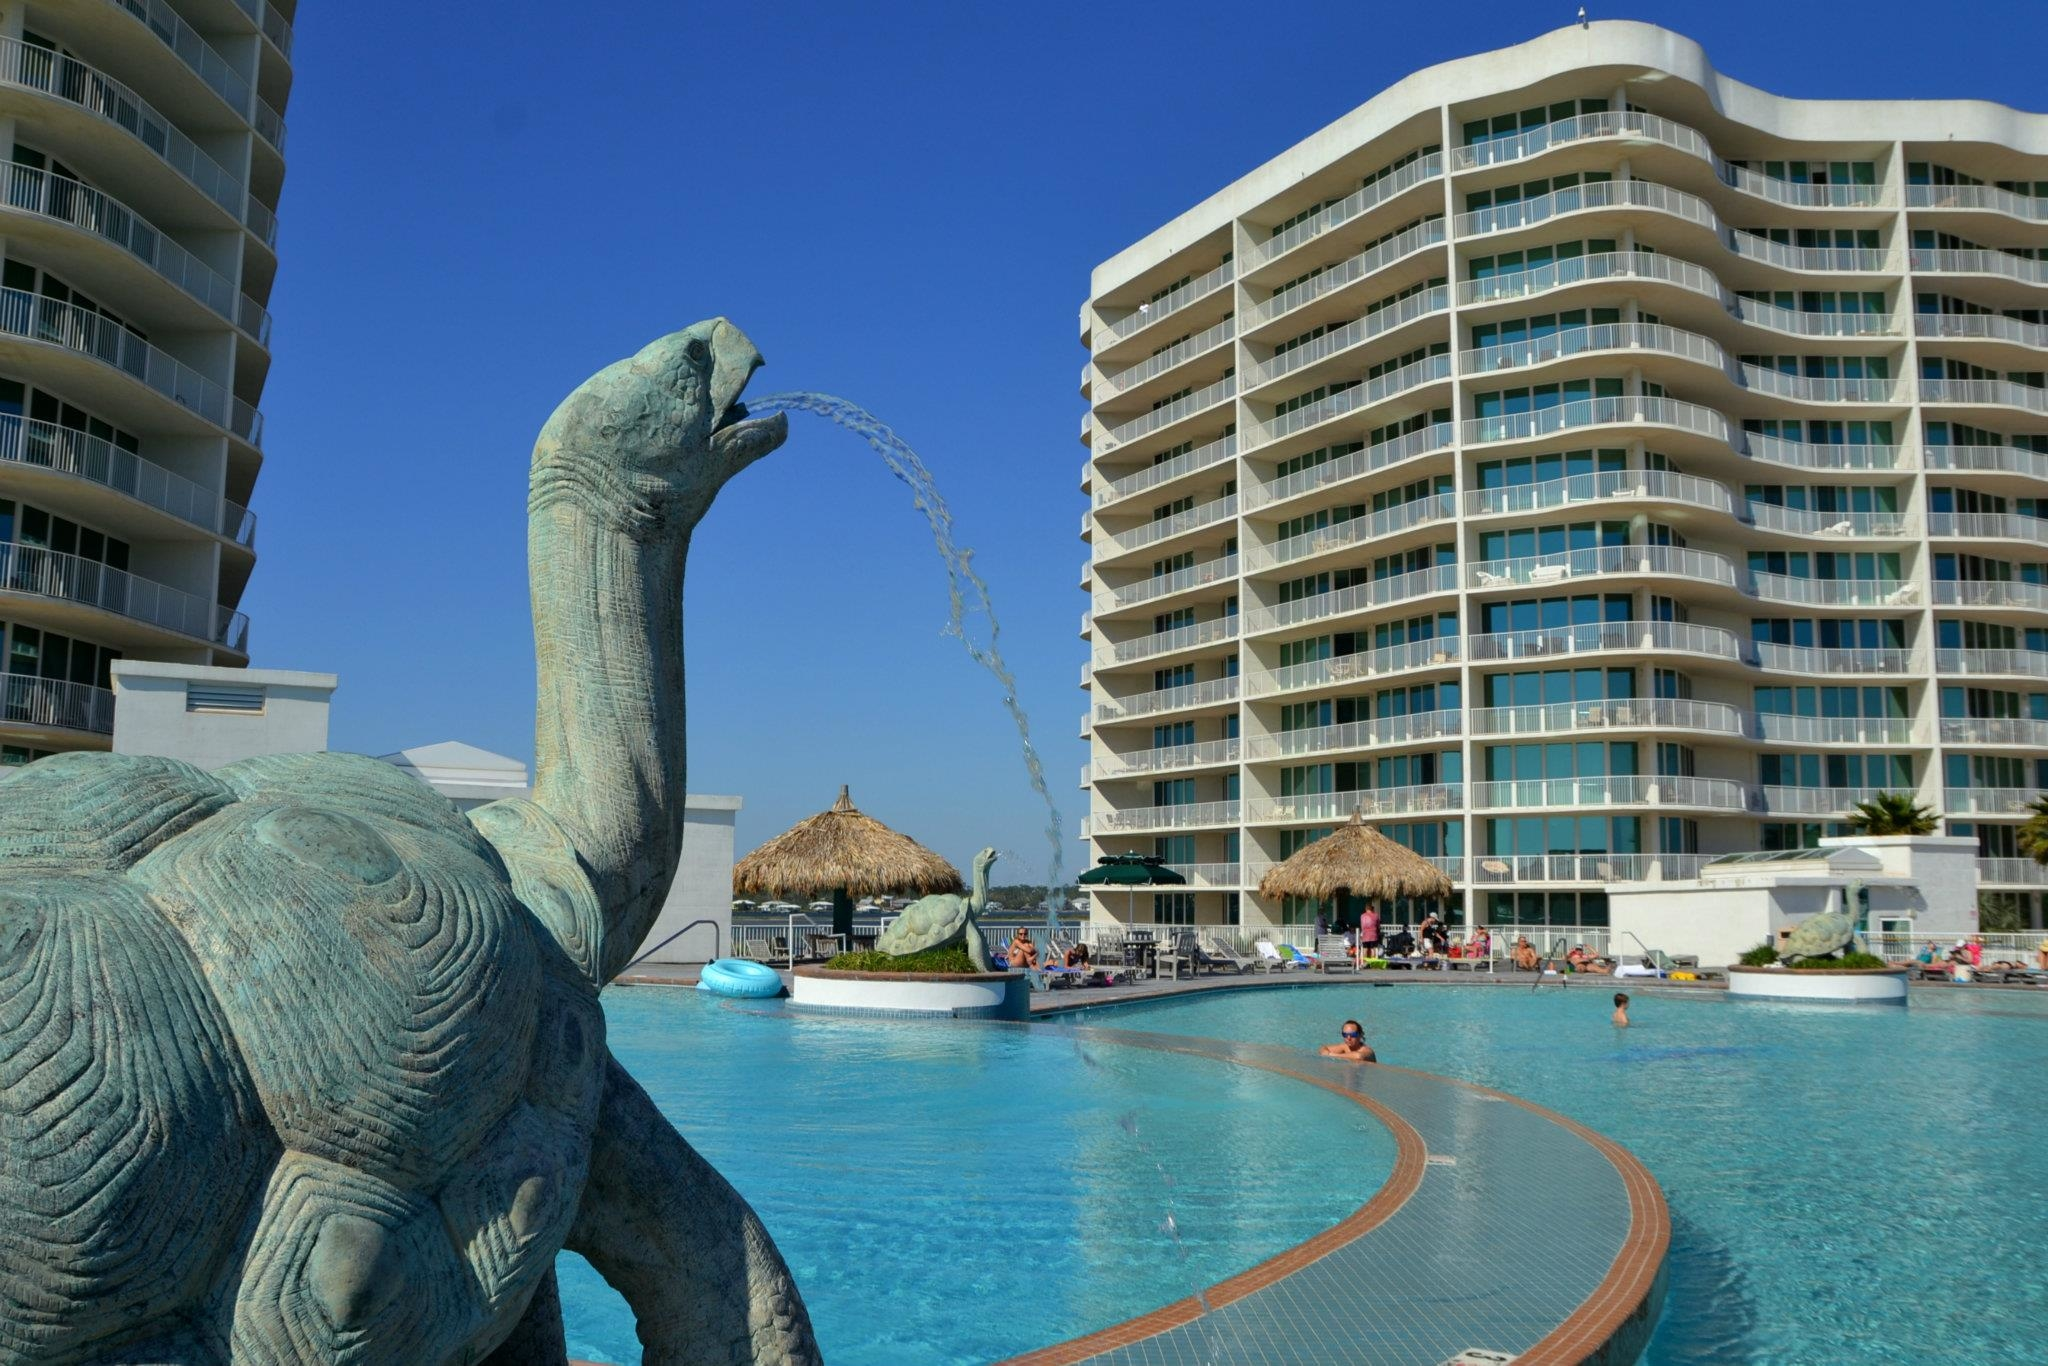 It is a water world at Caribe Resort